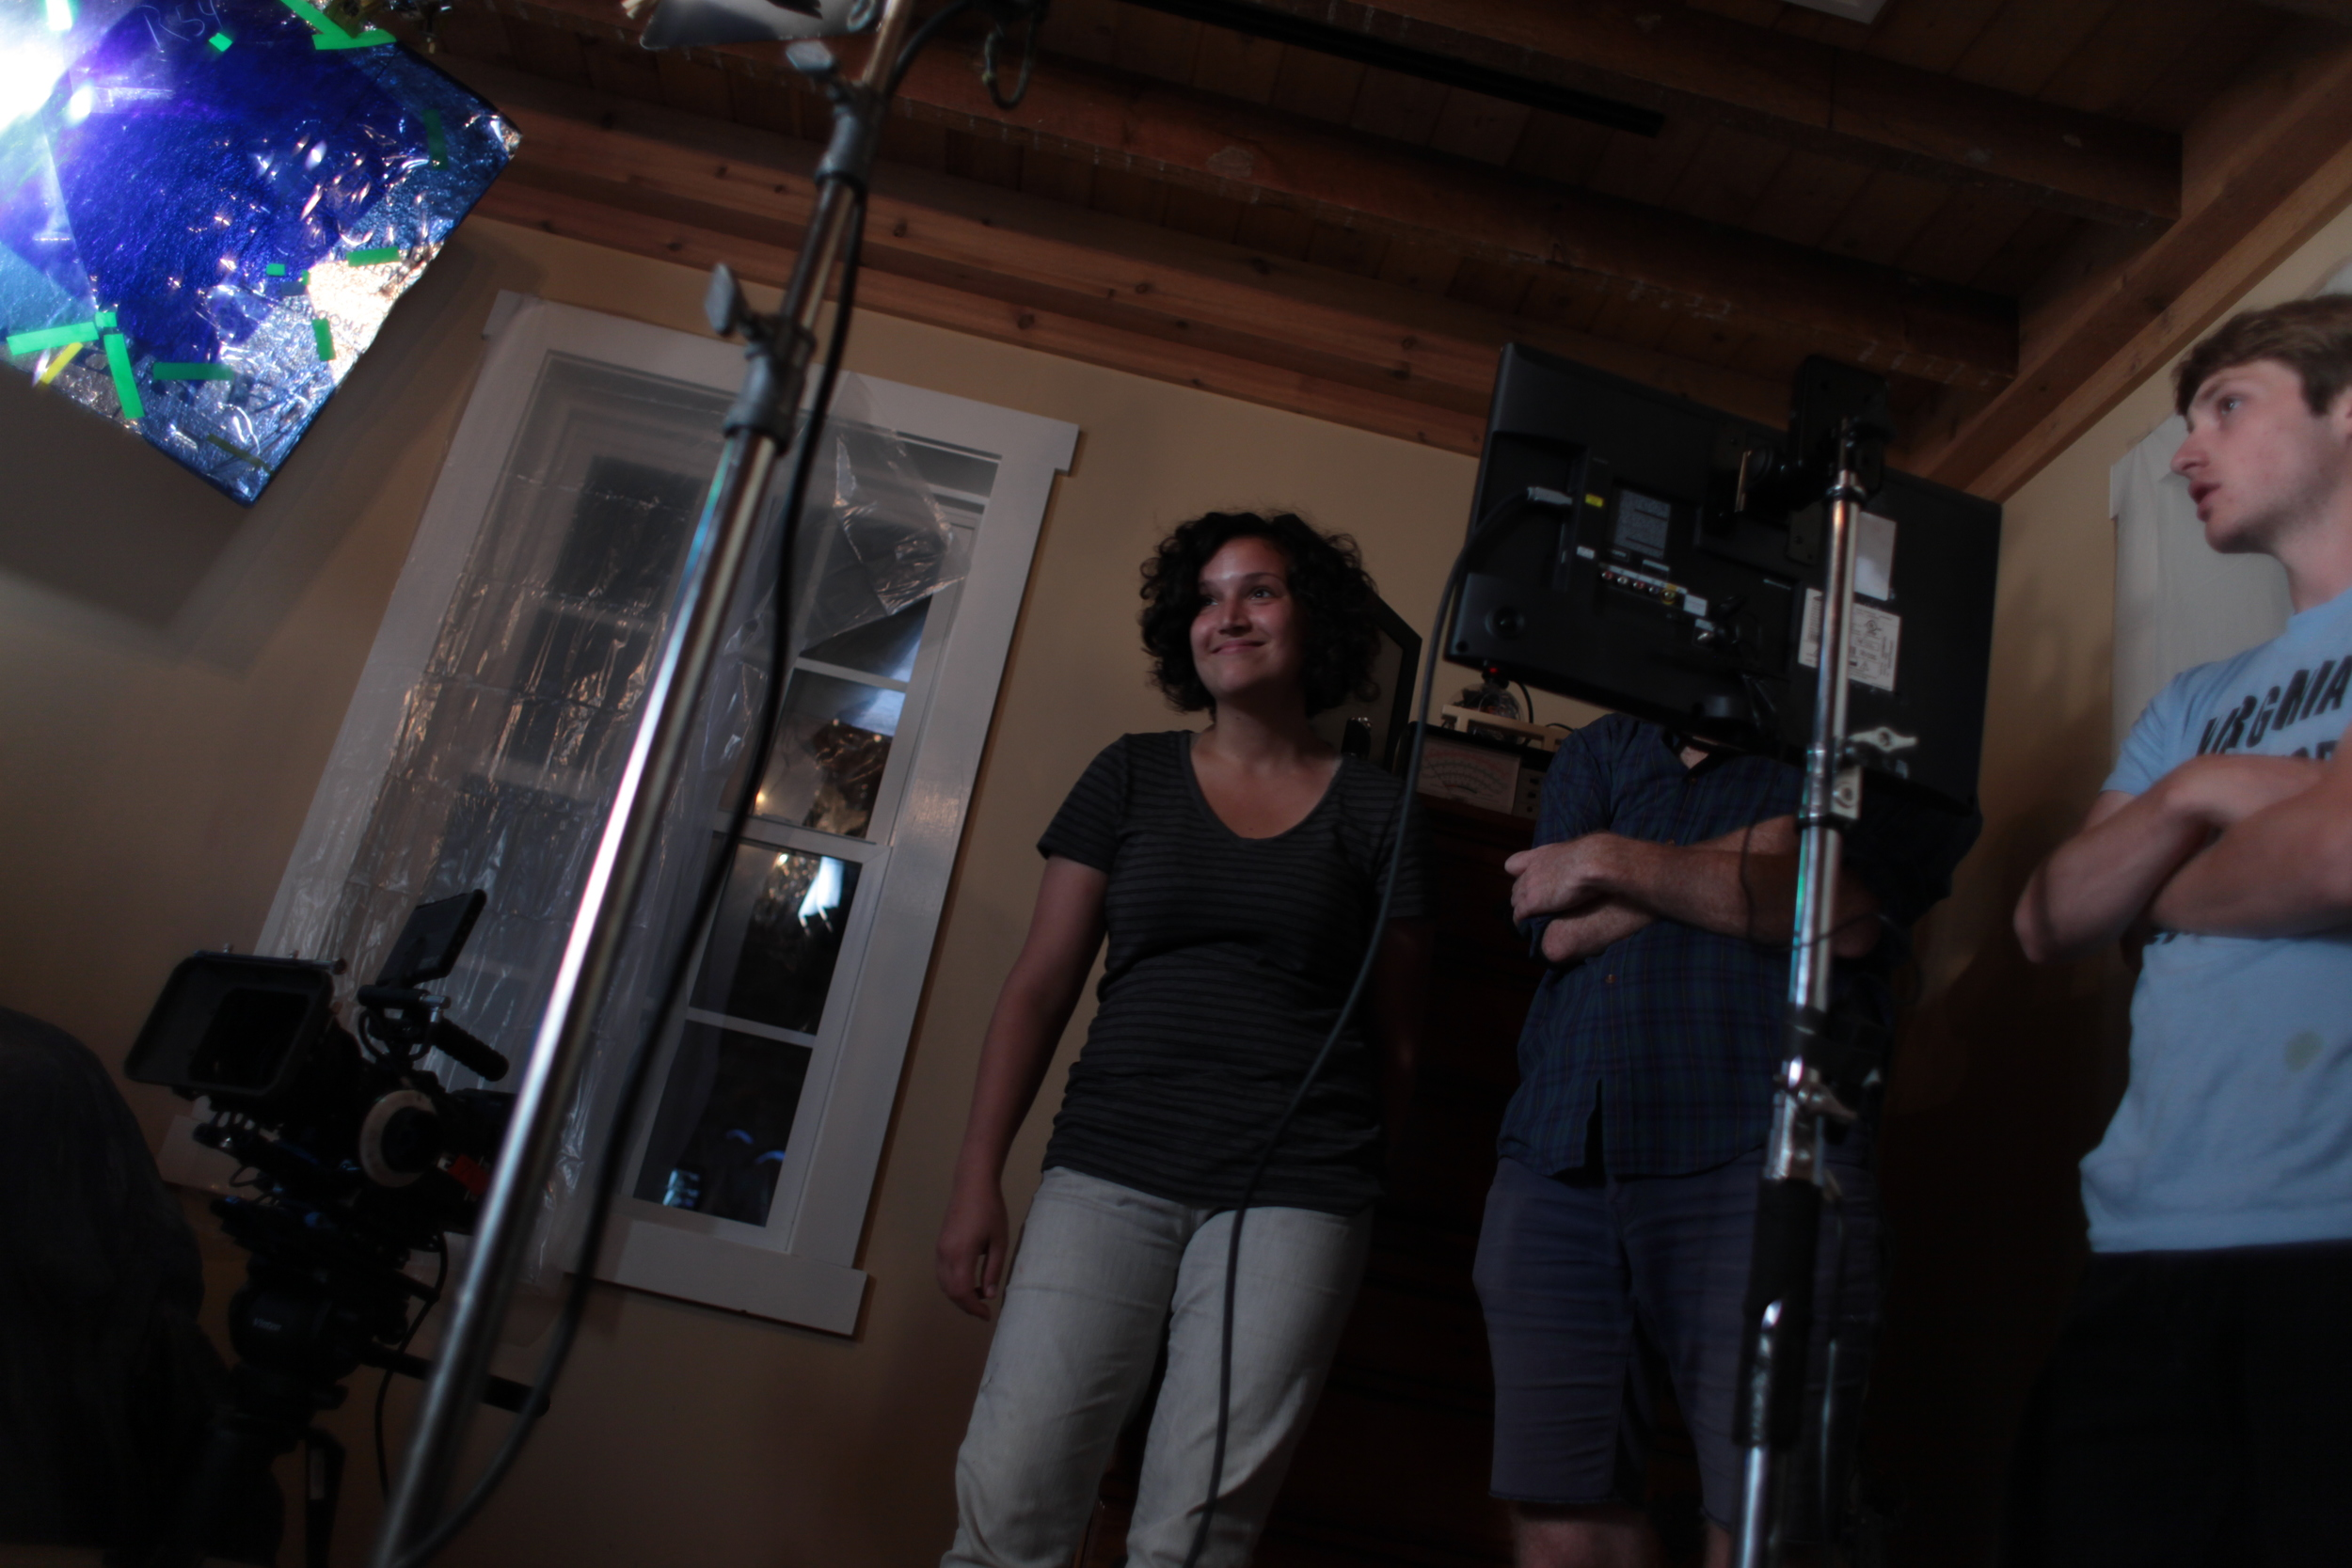 Michele Lombardi (producer/assistant director) and Caleb Plutzer (grip & electric, sound)